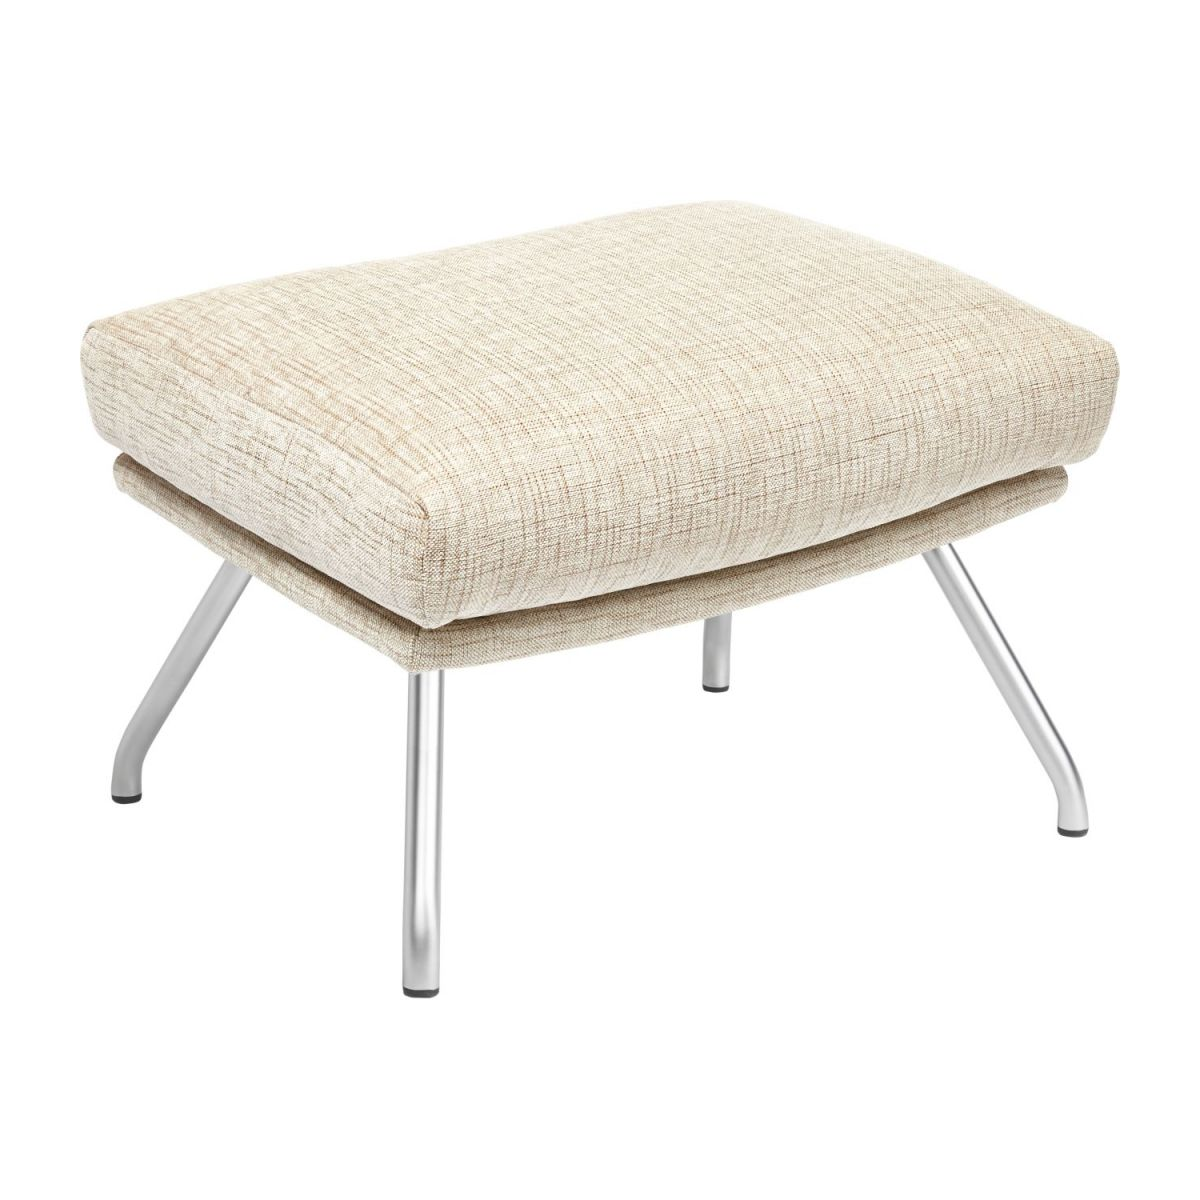 Footstool in Ancio fabric, nature with matt metal legs n°1